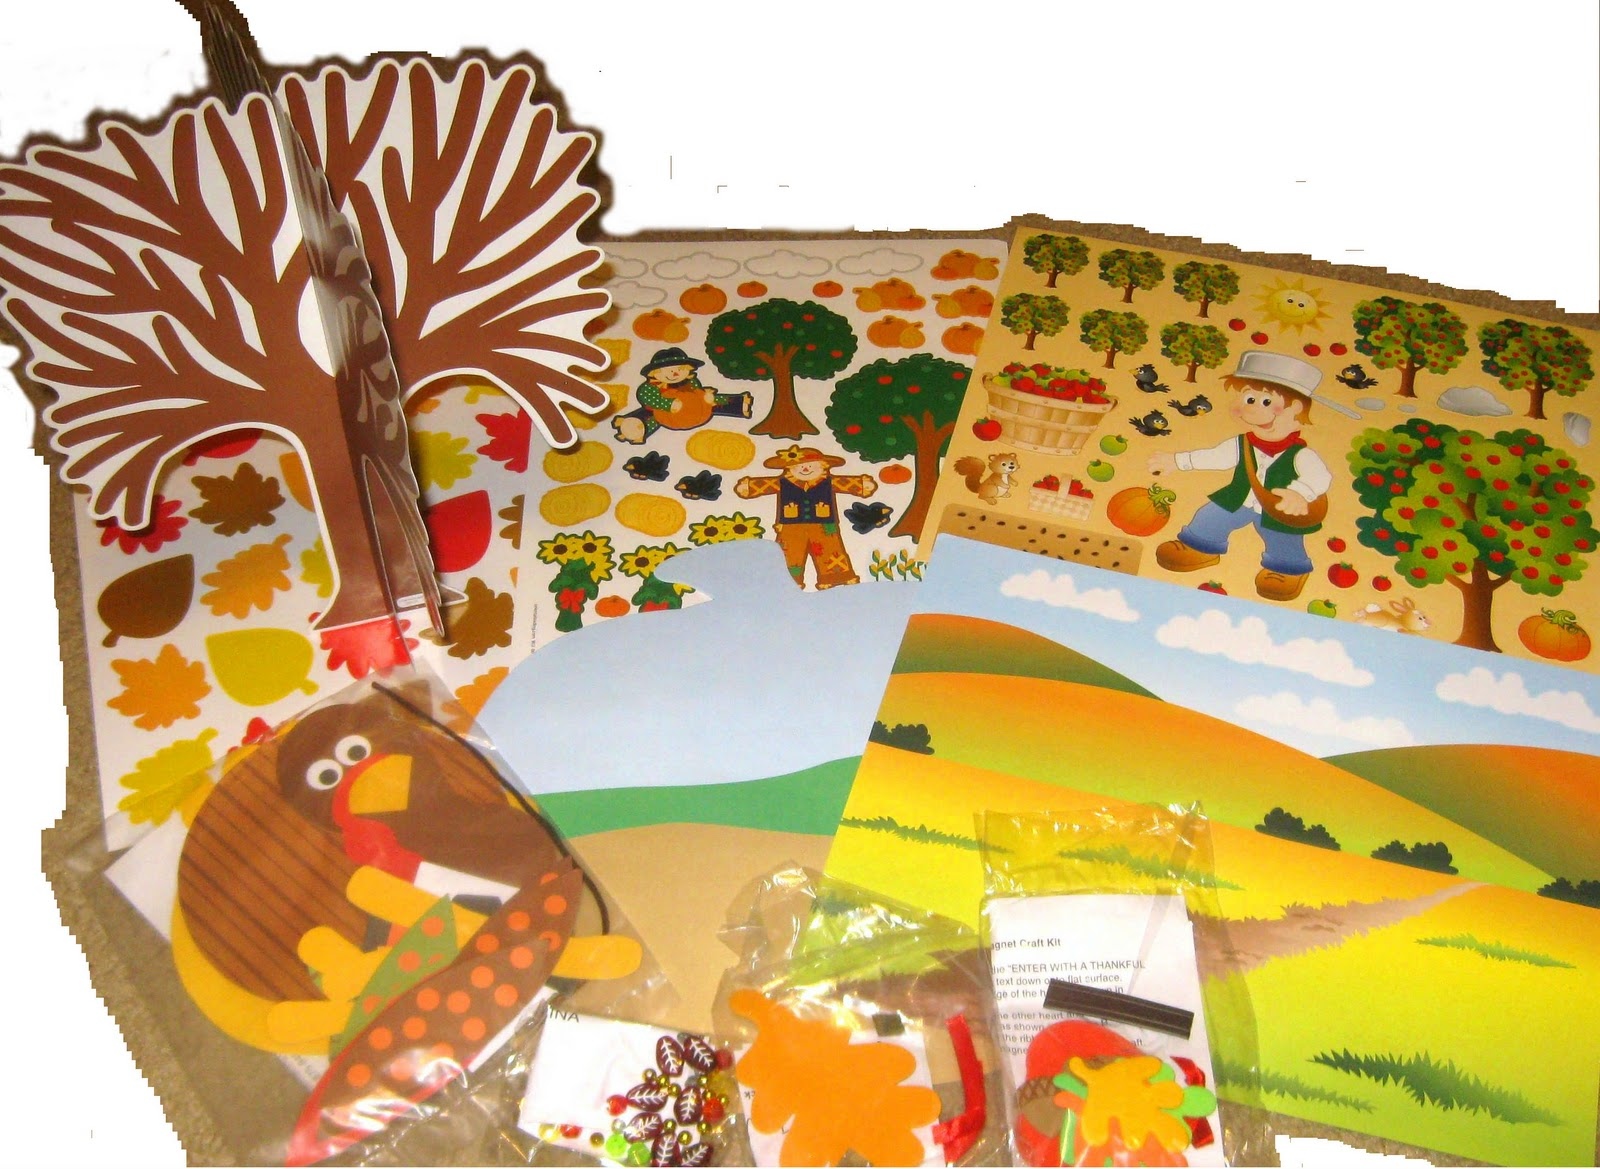 Craft kits for preschoolers - Inside The Thanksgiving Craft Kit For Preschoolers You Will Find